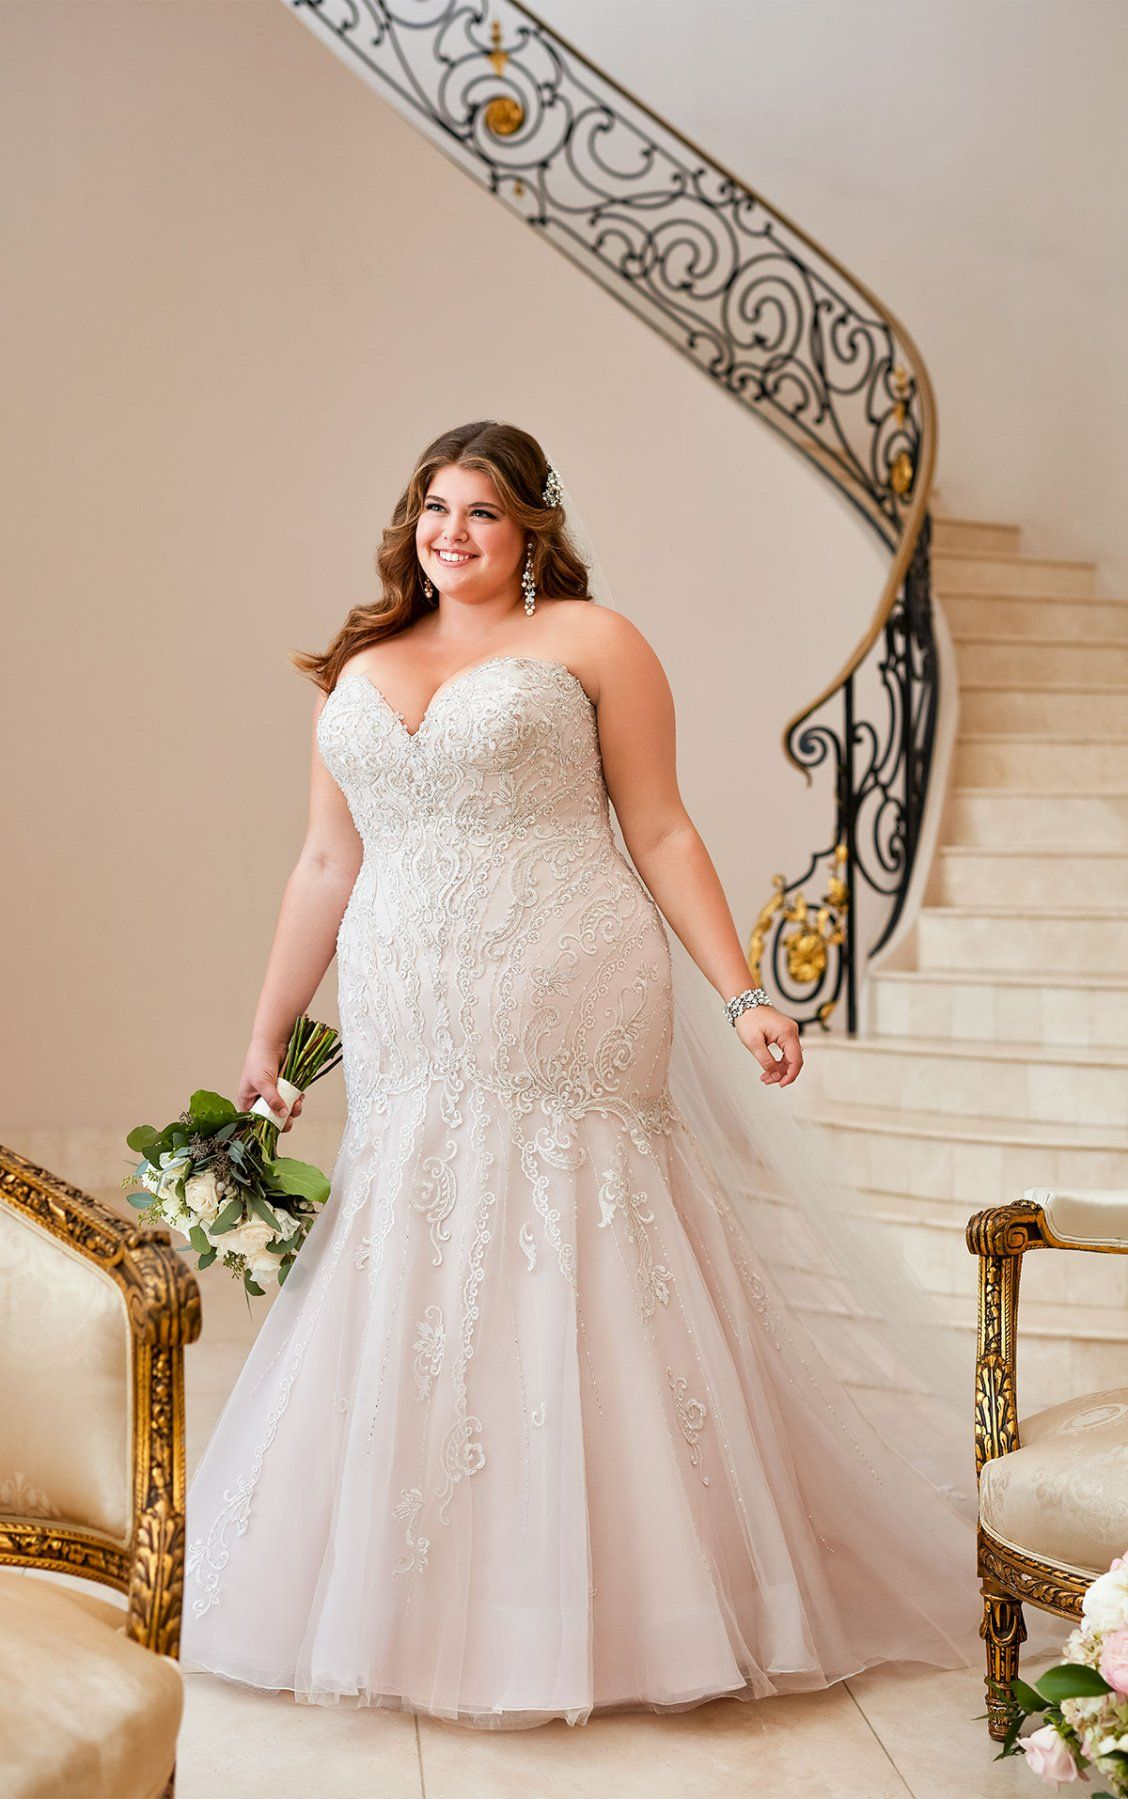 Mermaid Wedding Dress with Glamorous Lace Plus wedding